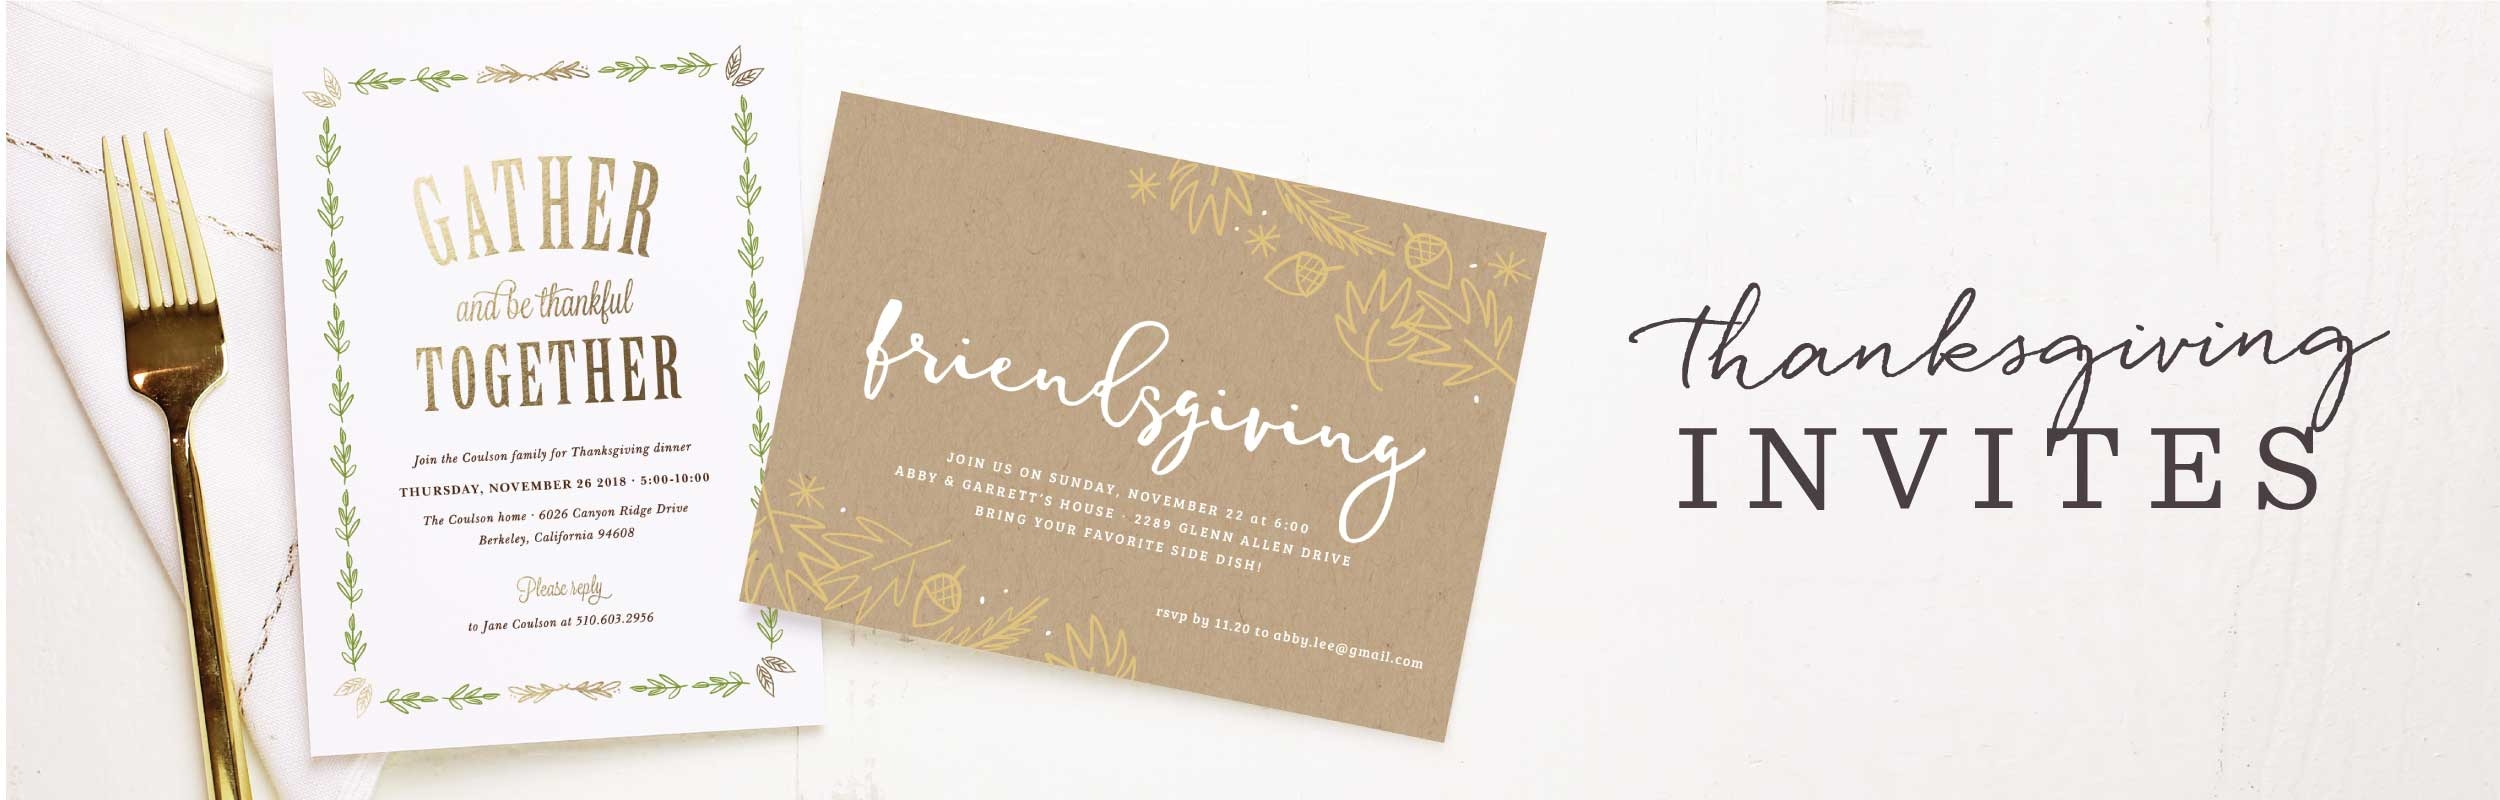 Thanksgiving Invitations & Friendsgiving Invitations | BasicInvite